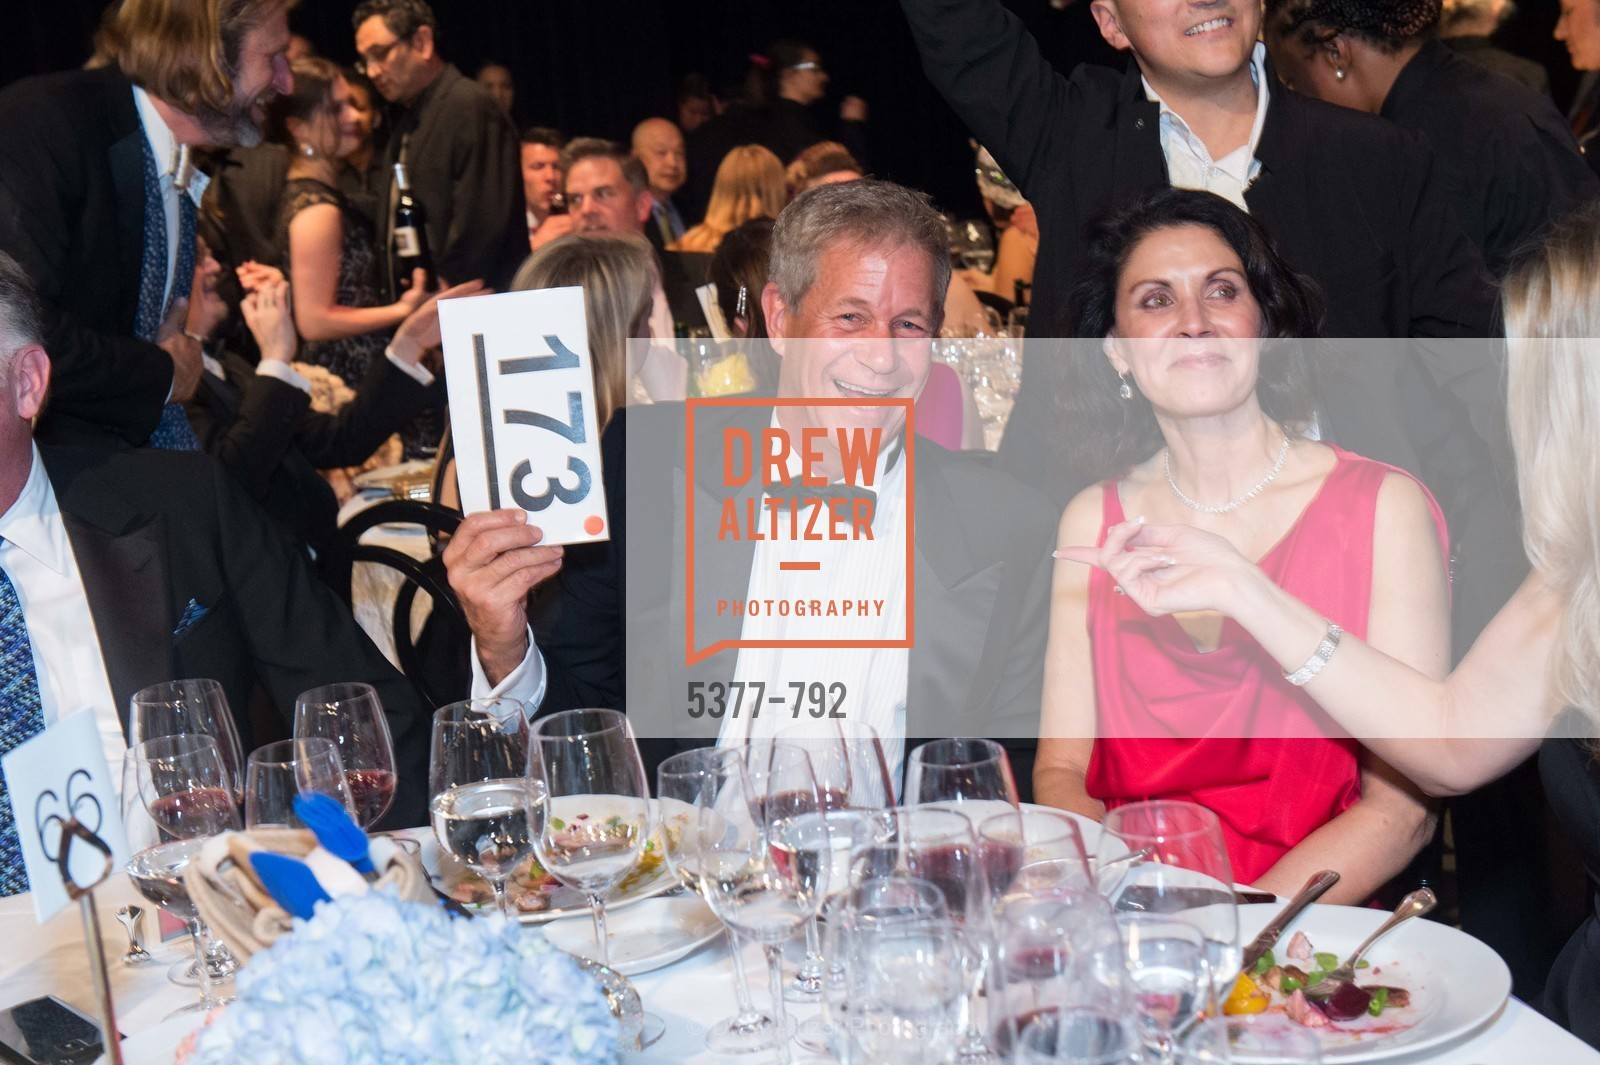 Steve Chess, Lois Chess, MEALS ON WHEELS OF SAN FRANCISCO'S 28th Annual Star Chefs and Vintners Gala, US, April 19th, 2015,Drew Altizer, Drew Altizer Photography, full-service agency, private events, San Francisco photographer, photographer california